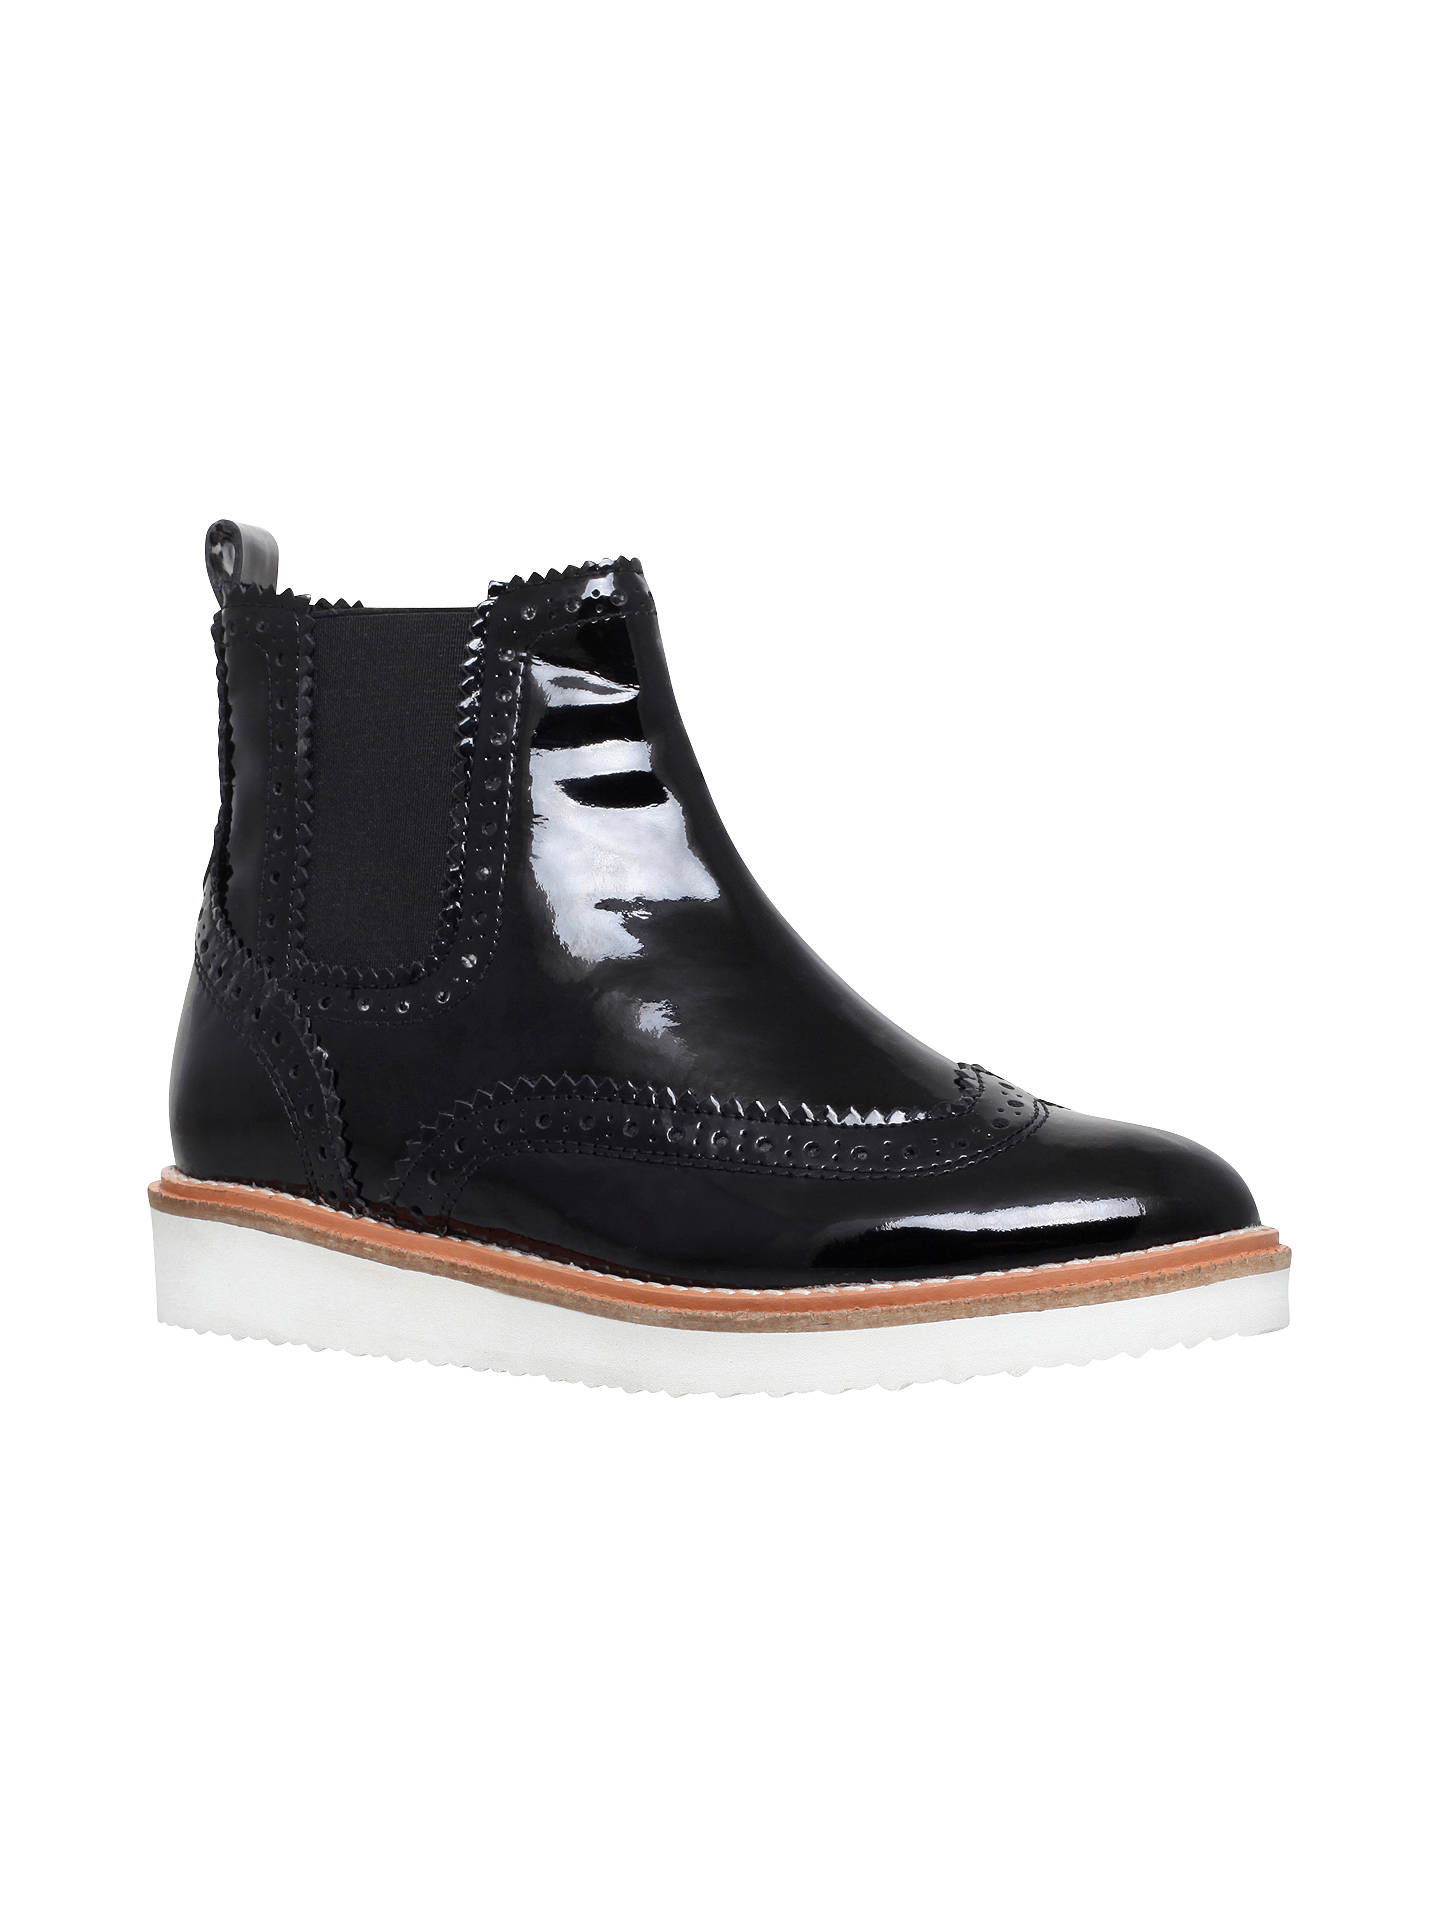 77beec55749 KG by Kurt Geiger Rocco Flat Ankle Boots at John Lewis   Partners